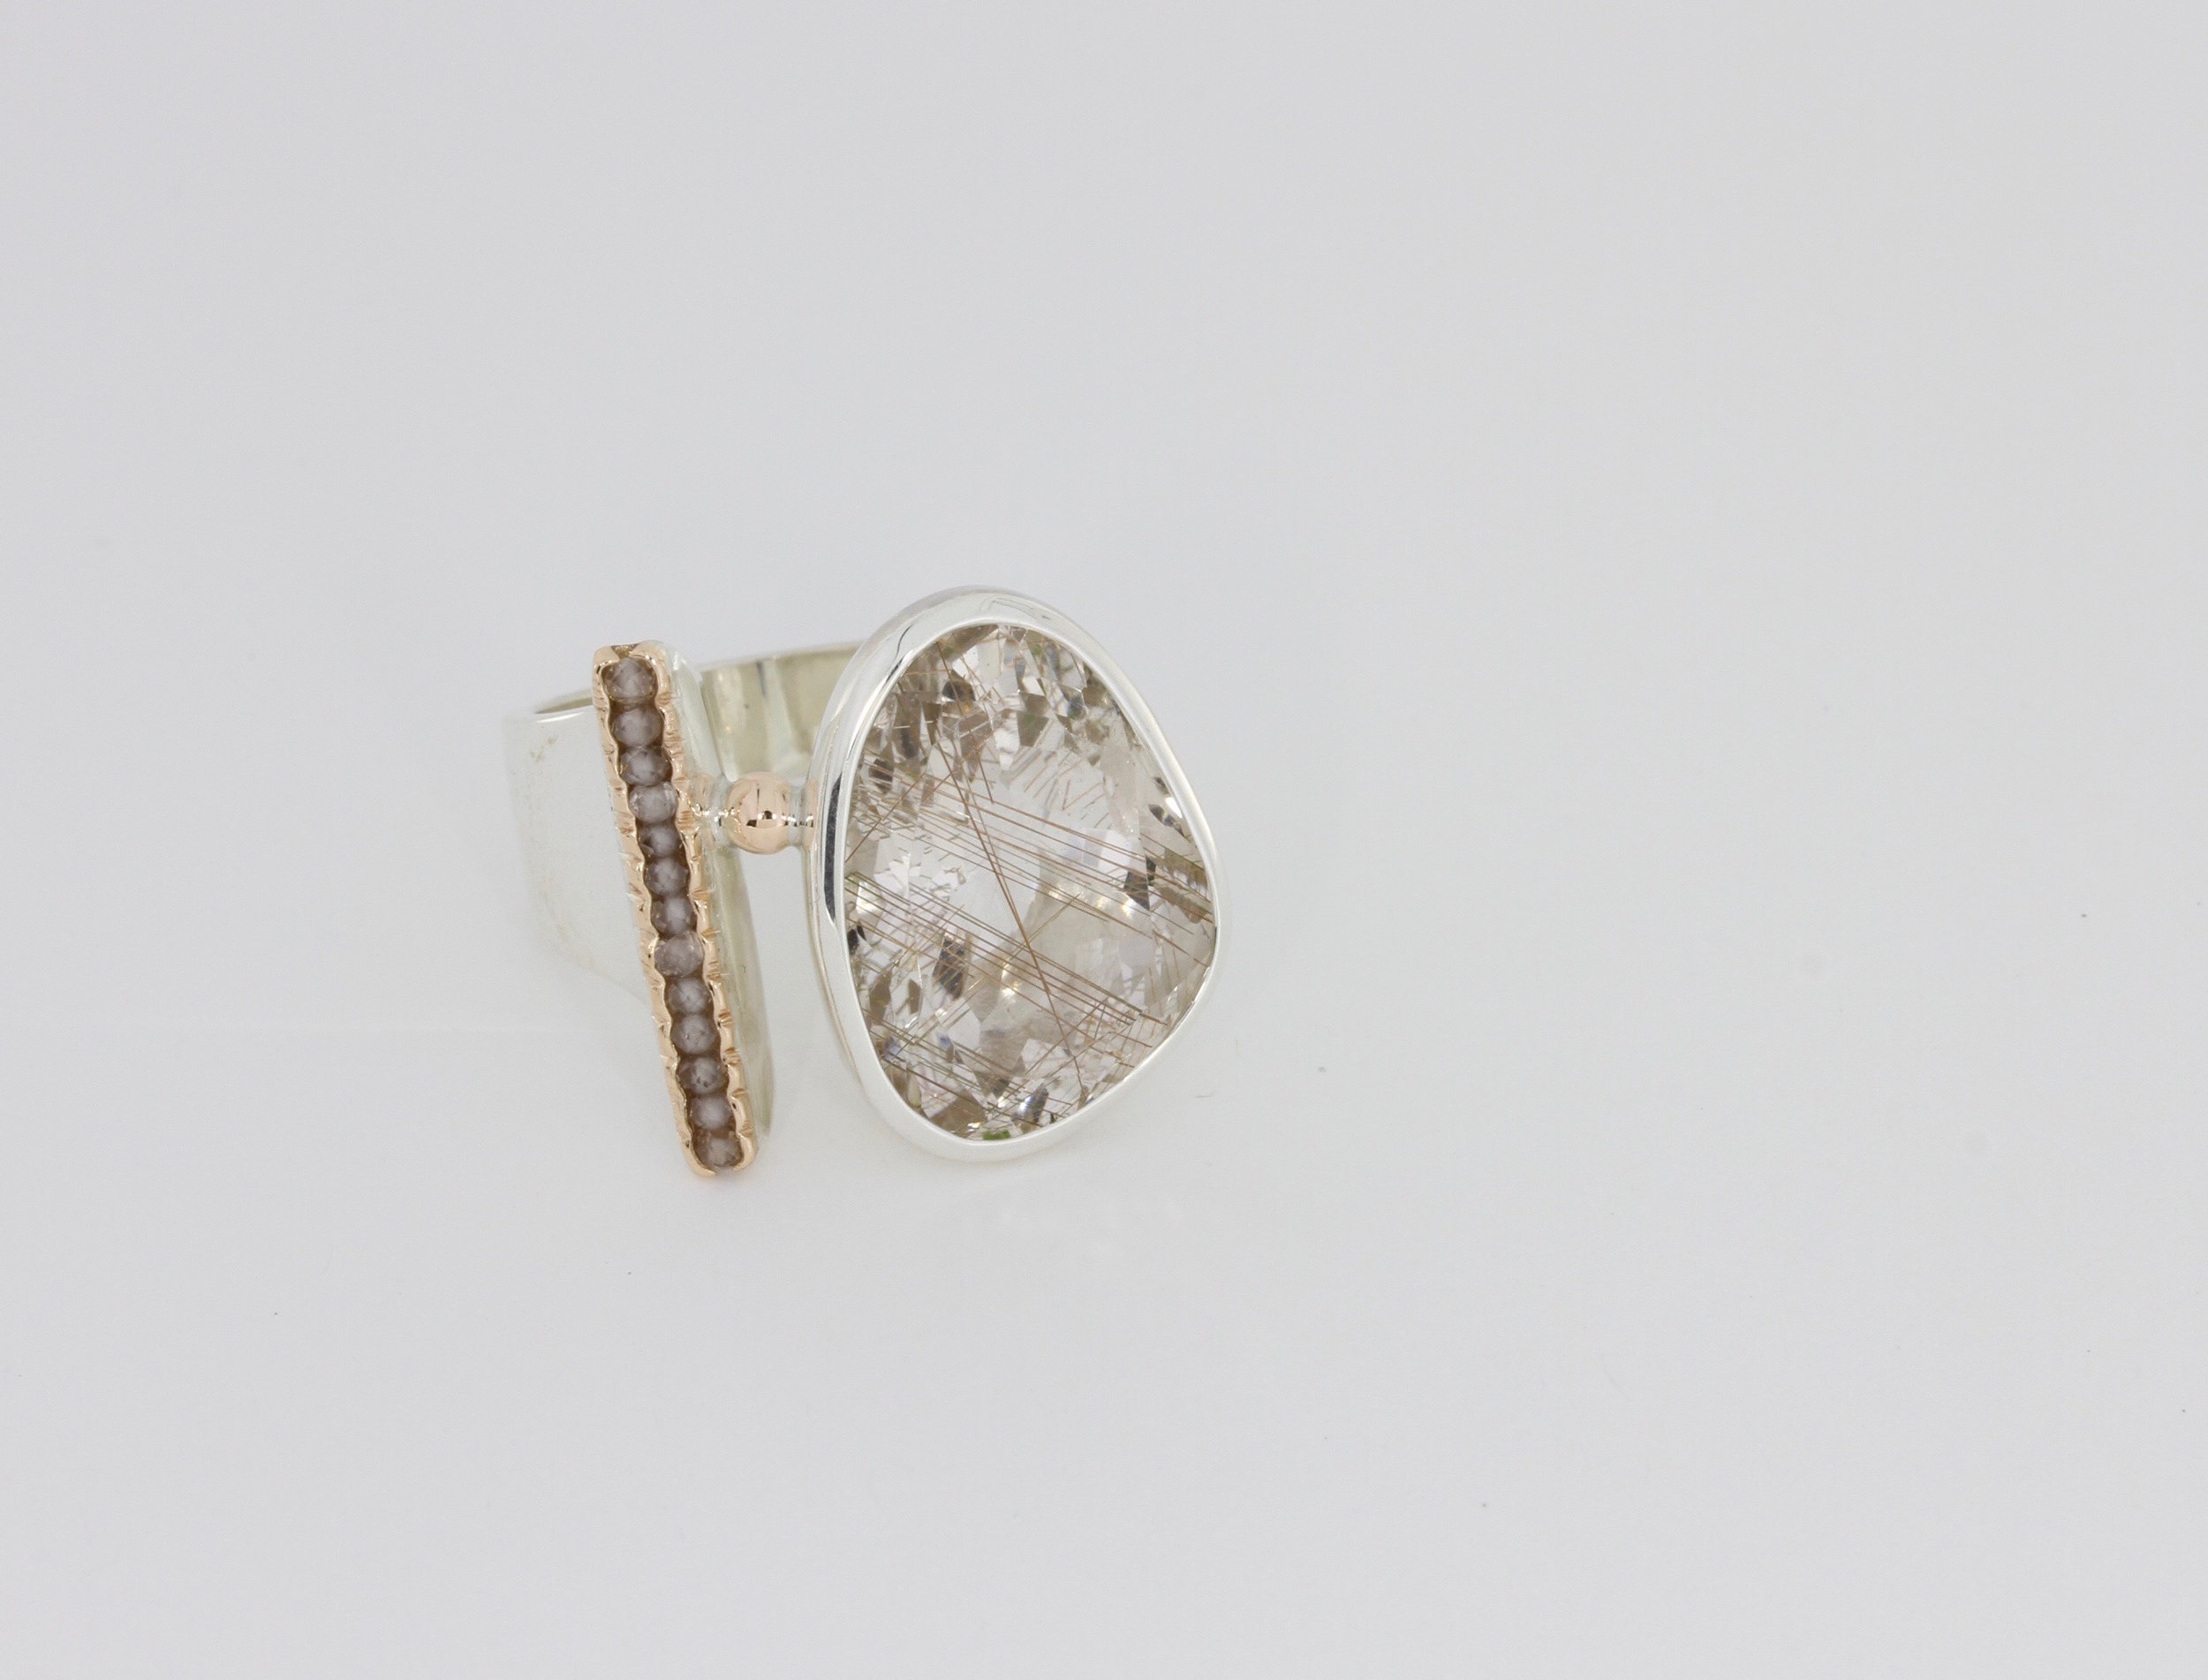 Payet-Mermaid-Ring-rutliated-quartz-with-zircon-set-in-9ct-rose-gold-and-sterling-silver.jpg